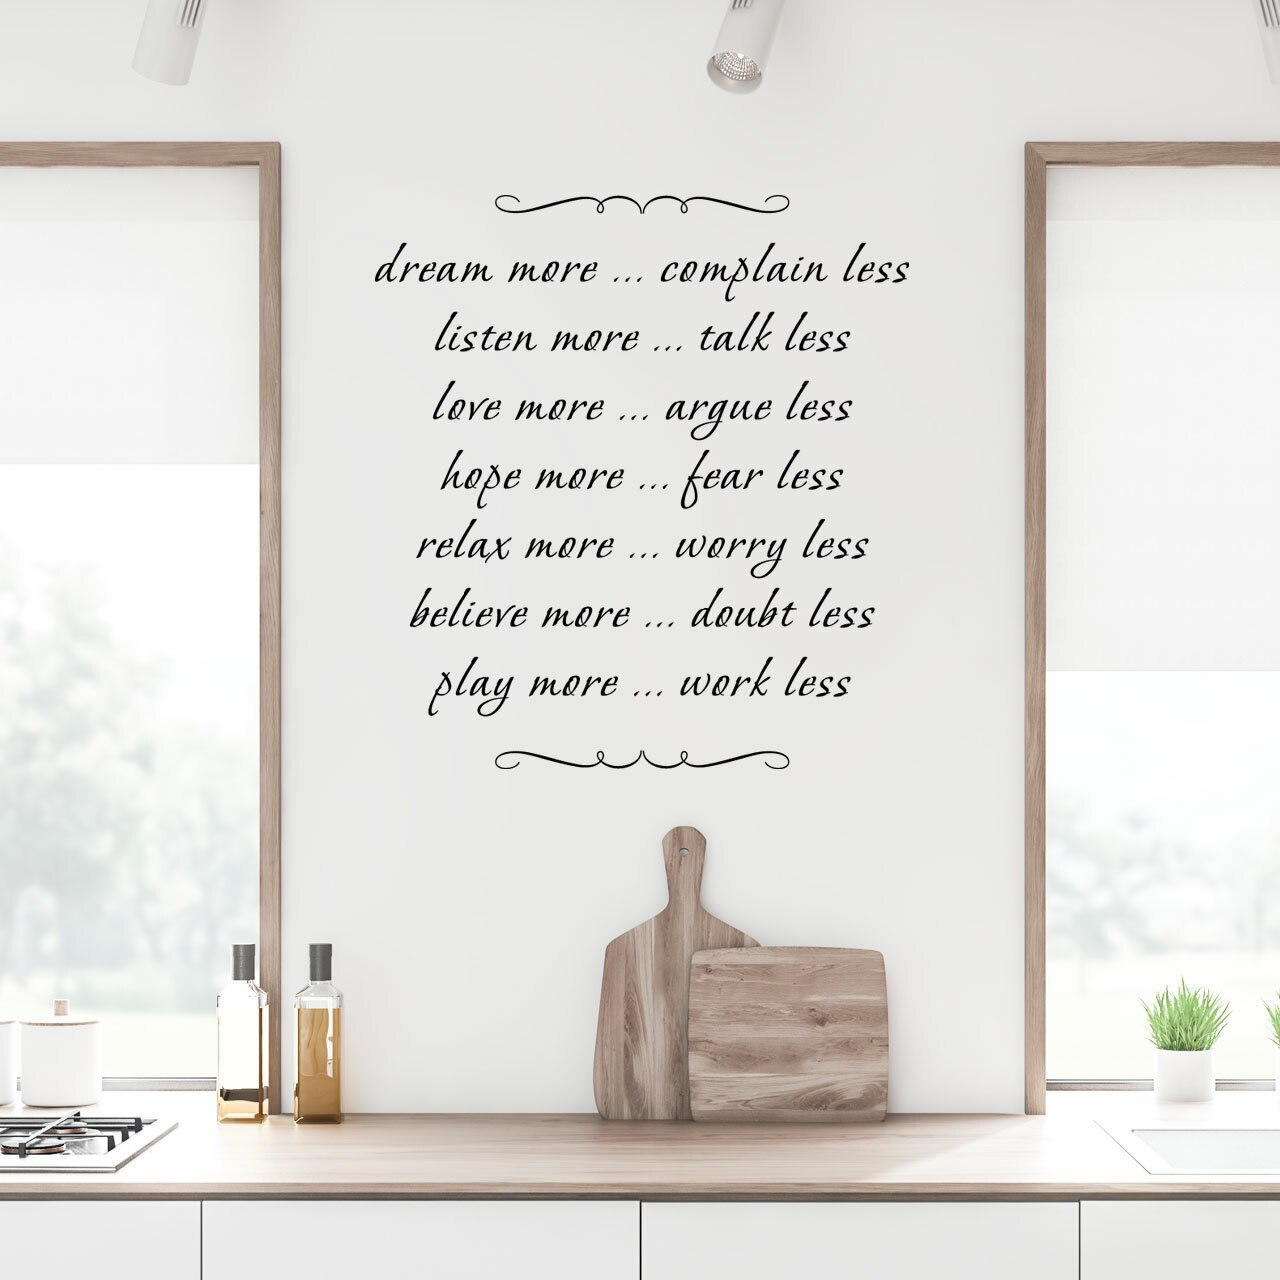 dream more complain less ... listen more talk less ... love more argue less ... hope more fear less ... relax more worry less ... believe more doubt less ... play more work less written in multiple lines with decorative scrolls on the top and bottom in black vinyl lettering applied to a white kitchen wall over a counter holding two cutting boards